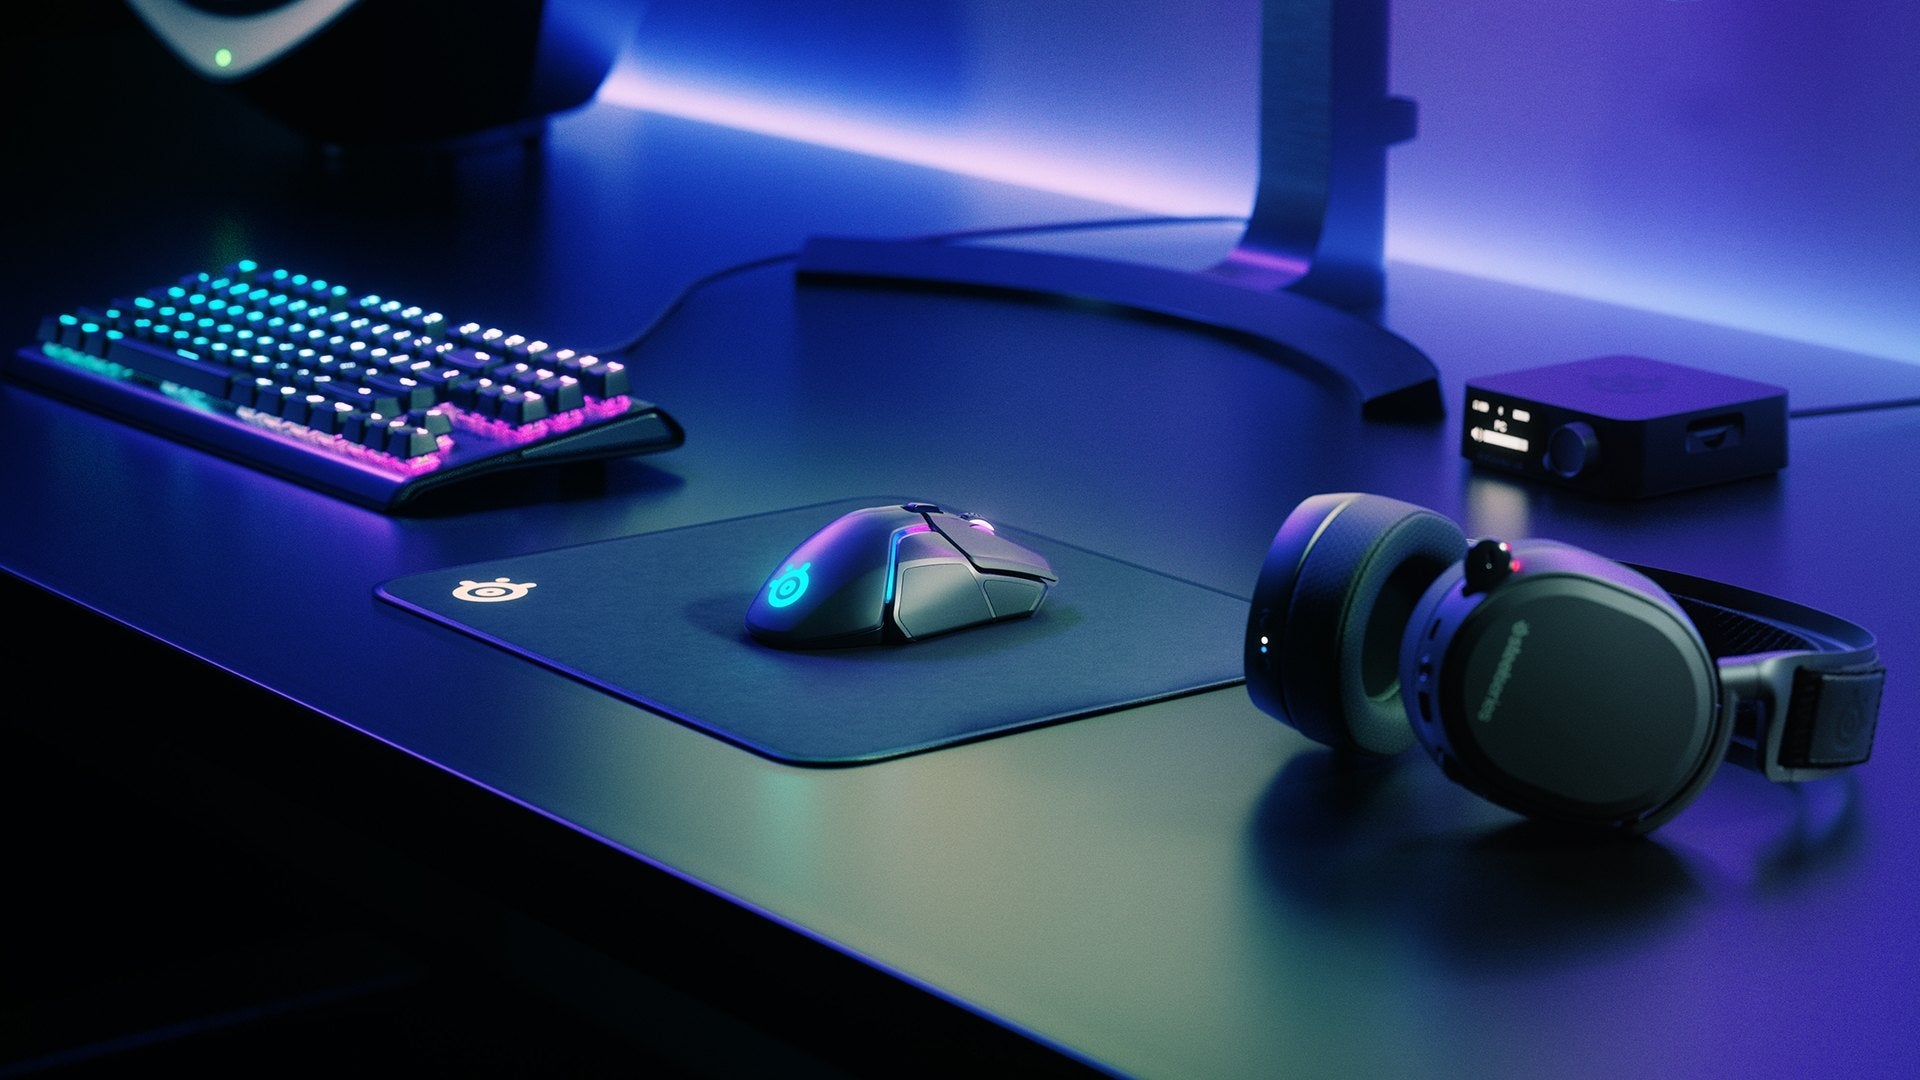 Rev Up the Engine - SteelSeries Engine Software unlocks an impressive arsenal of Engine Apps that make customization of the 8-zone RGB lighting easy and intuitive. The Discord and GameSense Engine Apps allow for chat notifications, in-game events, and more...